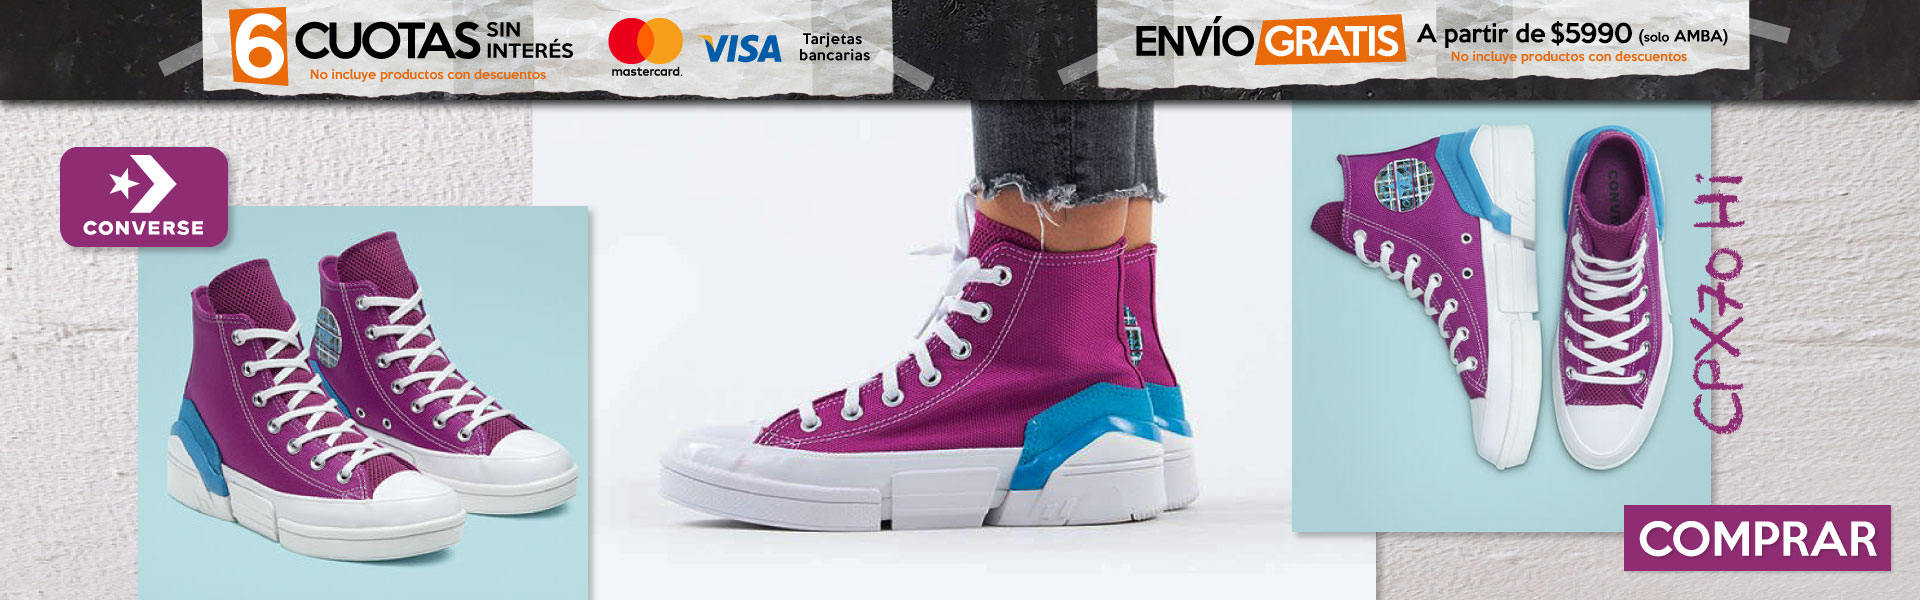 Converse hike DT